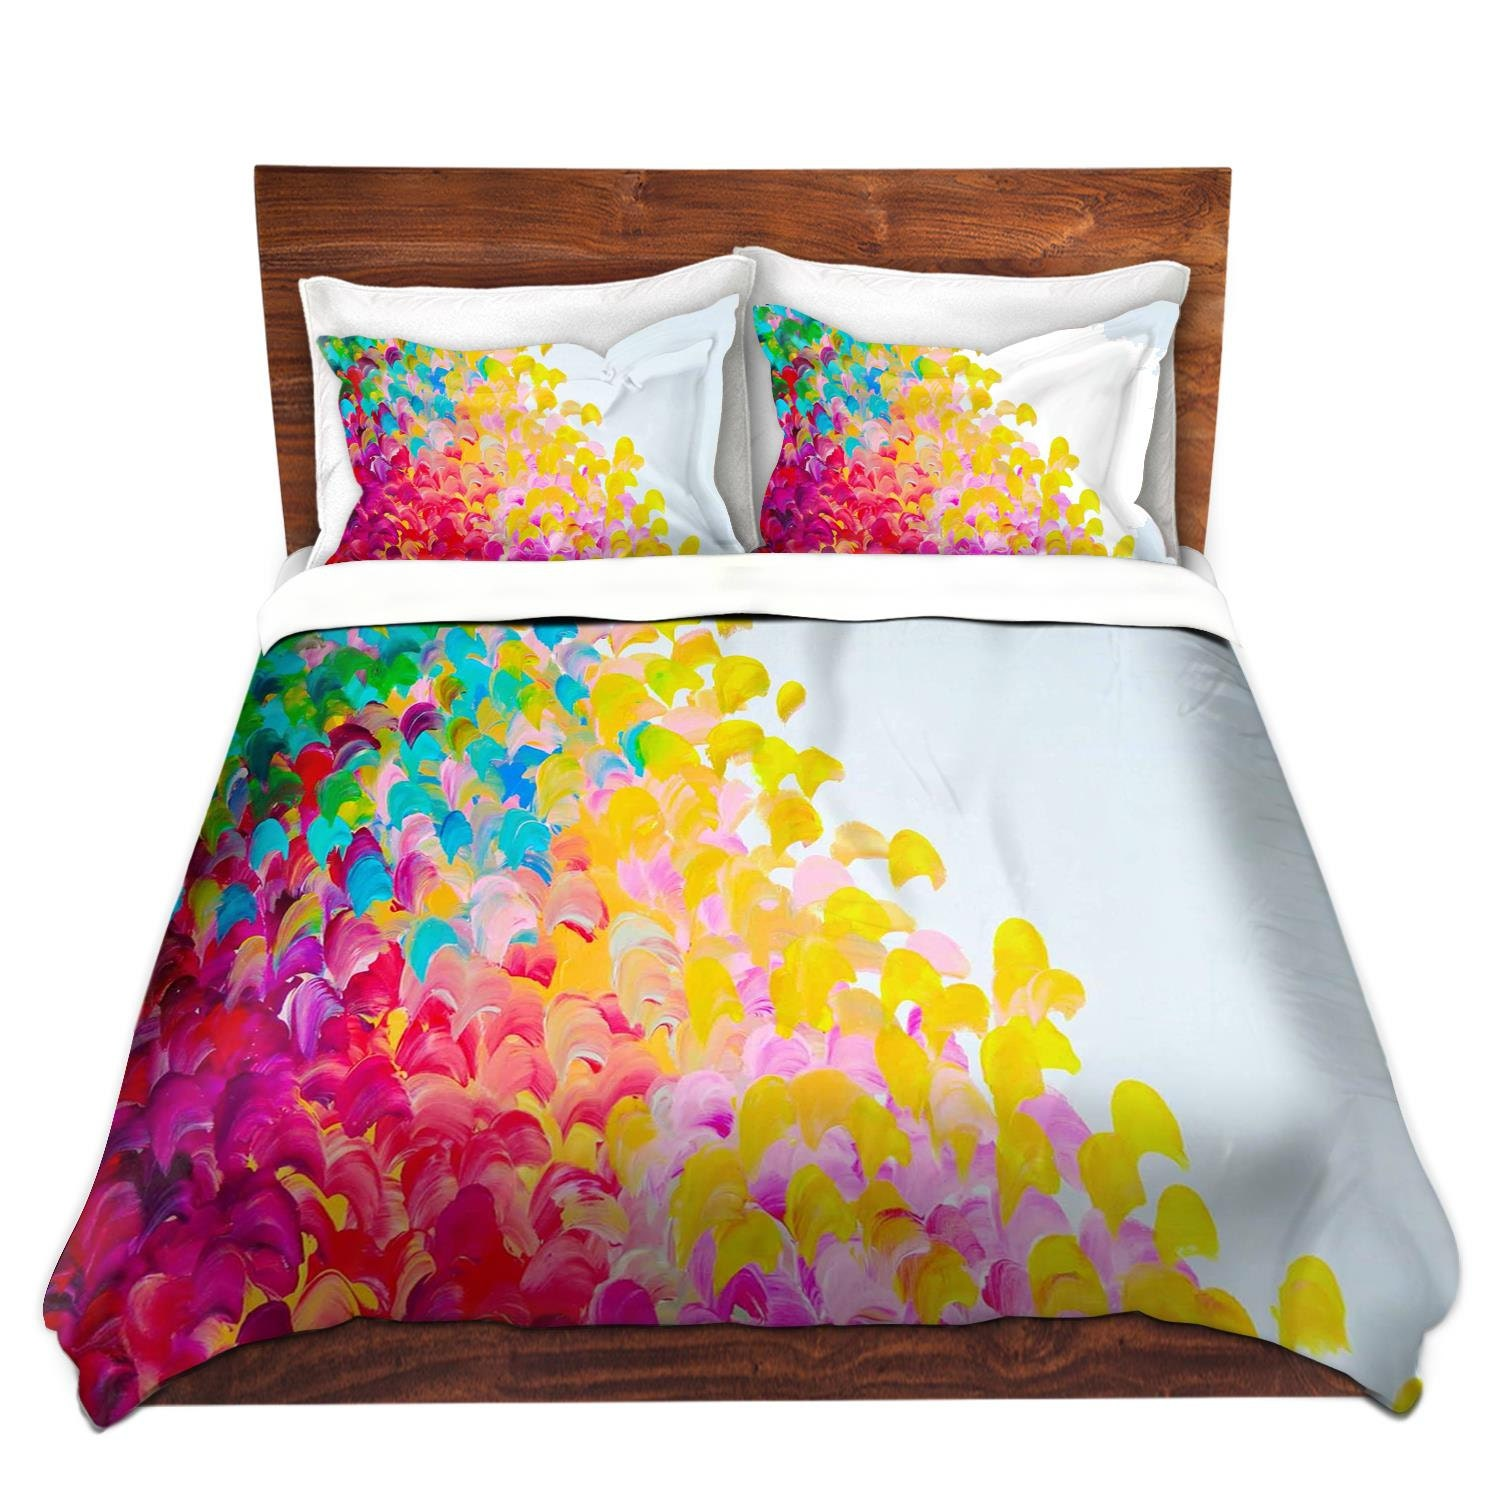 Fabulous RAINBOW Fine Art Rainbow Duvet Covers, King Queen Twin Color TS19